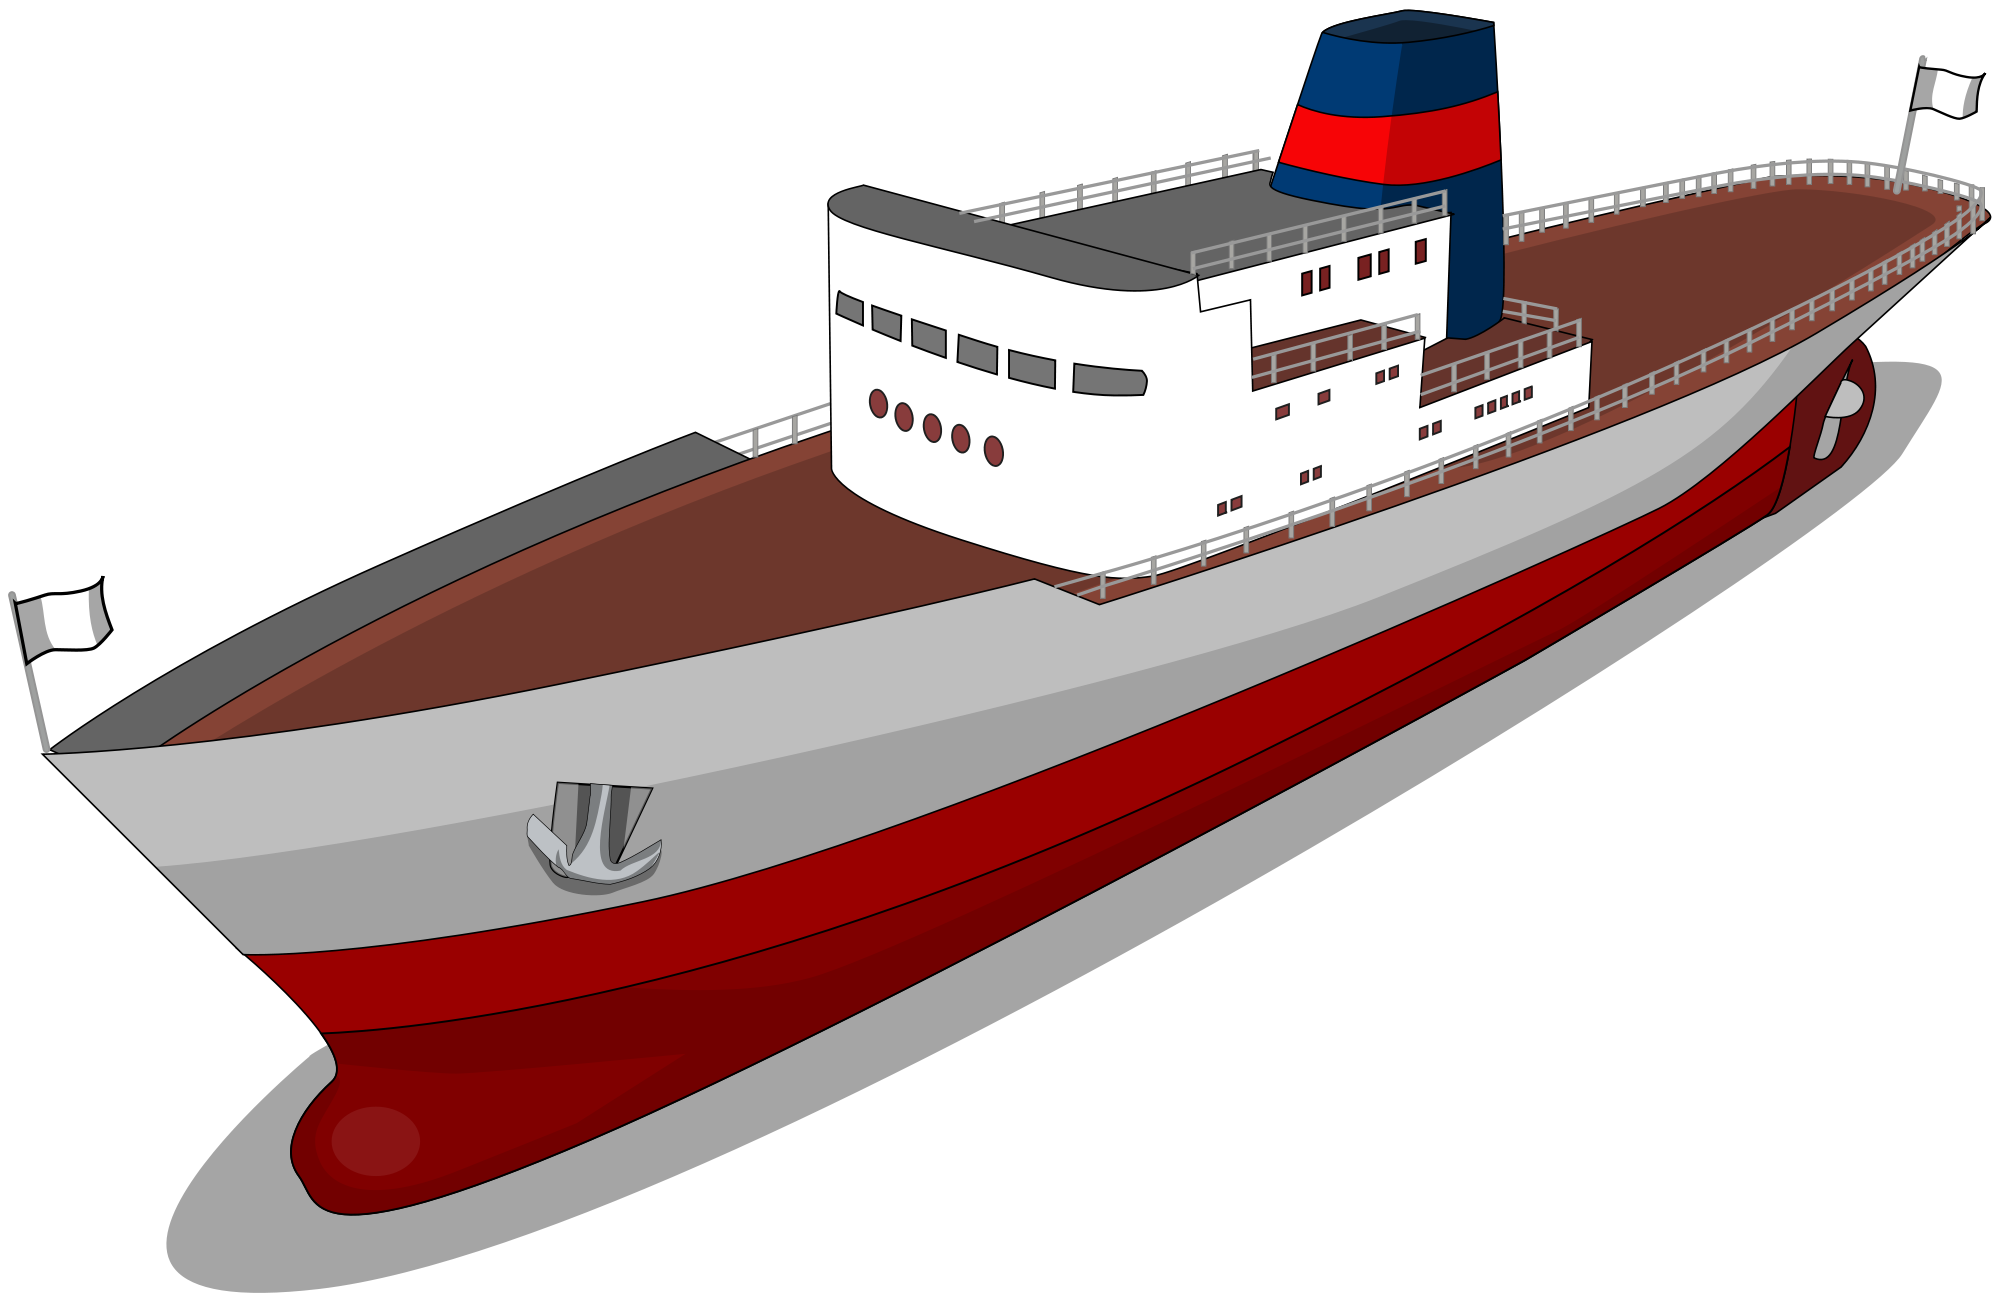 clipart transparent library File ship wikimedia commons. Vector boat svg